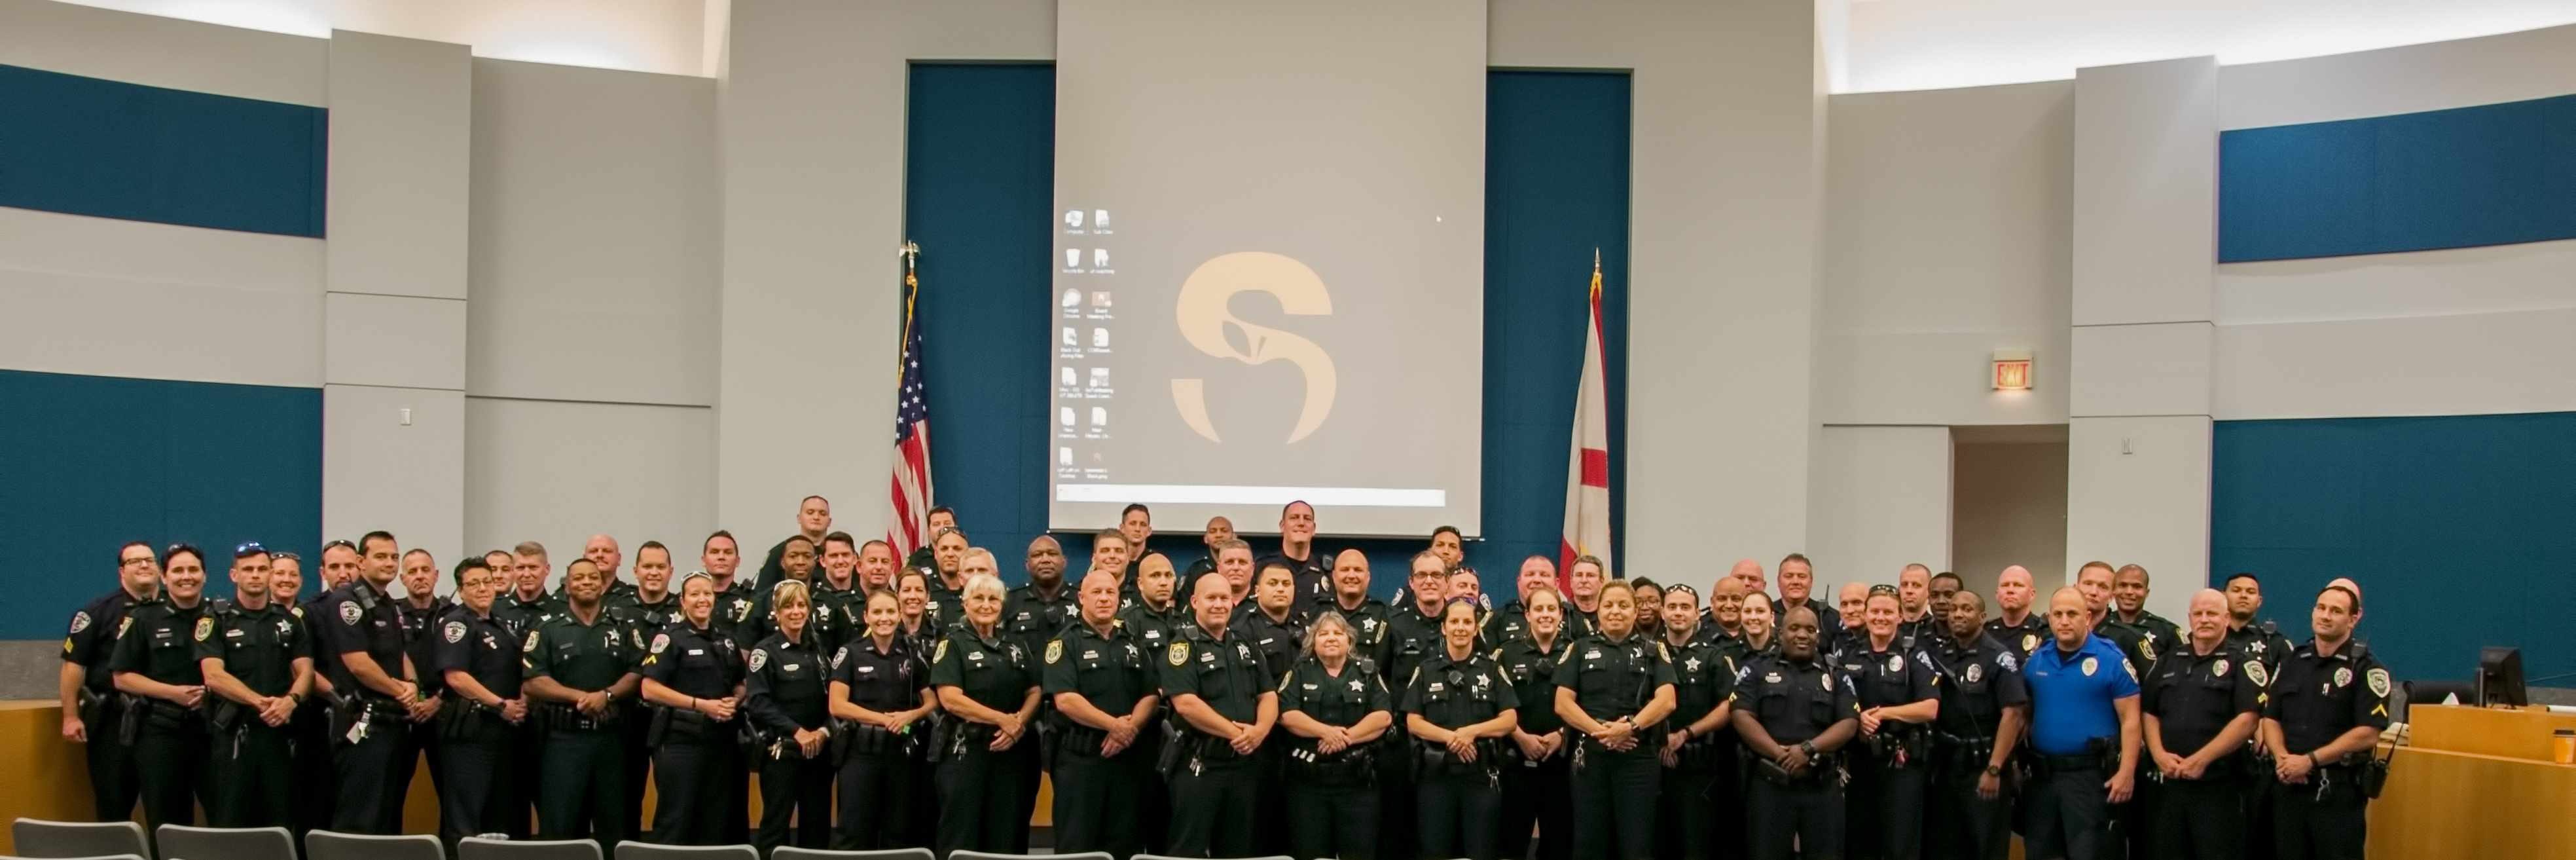 SCPS School Resources Officer Group Photo